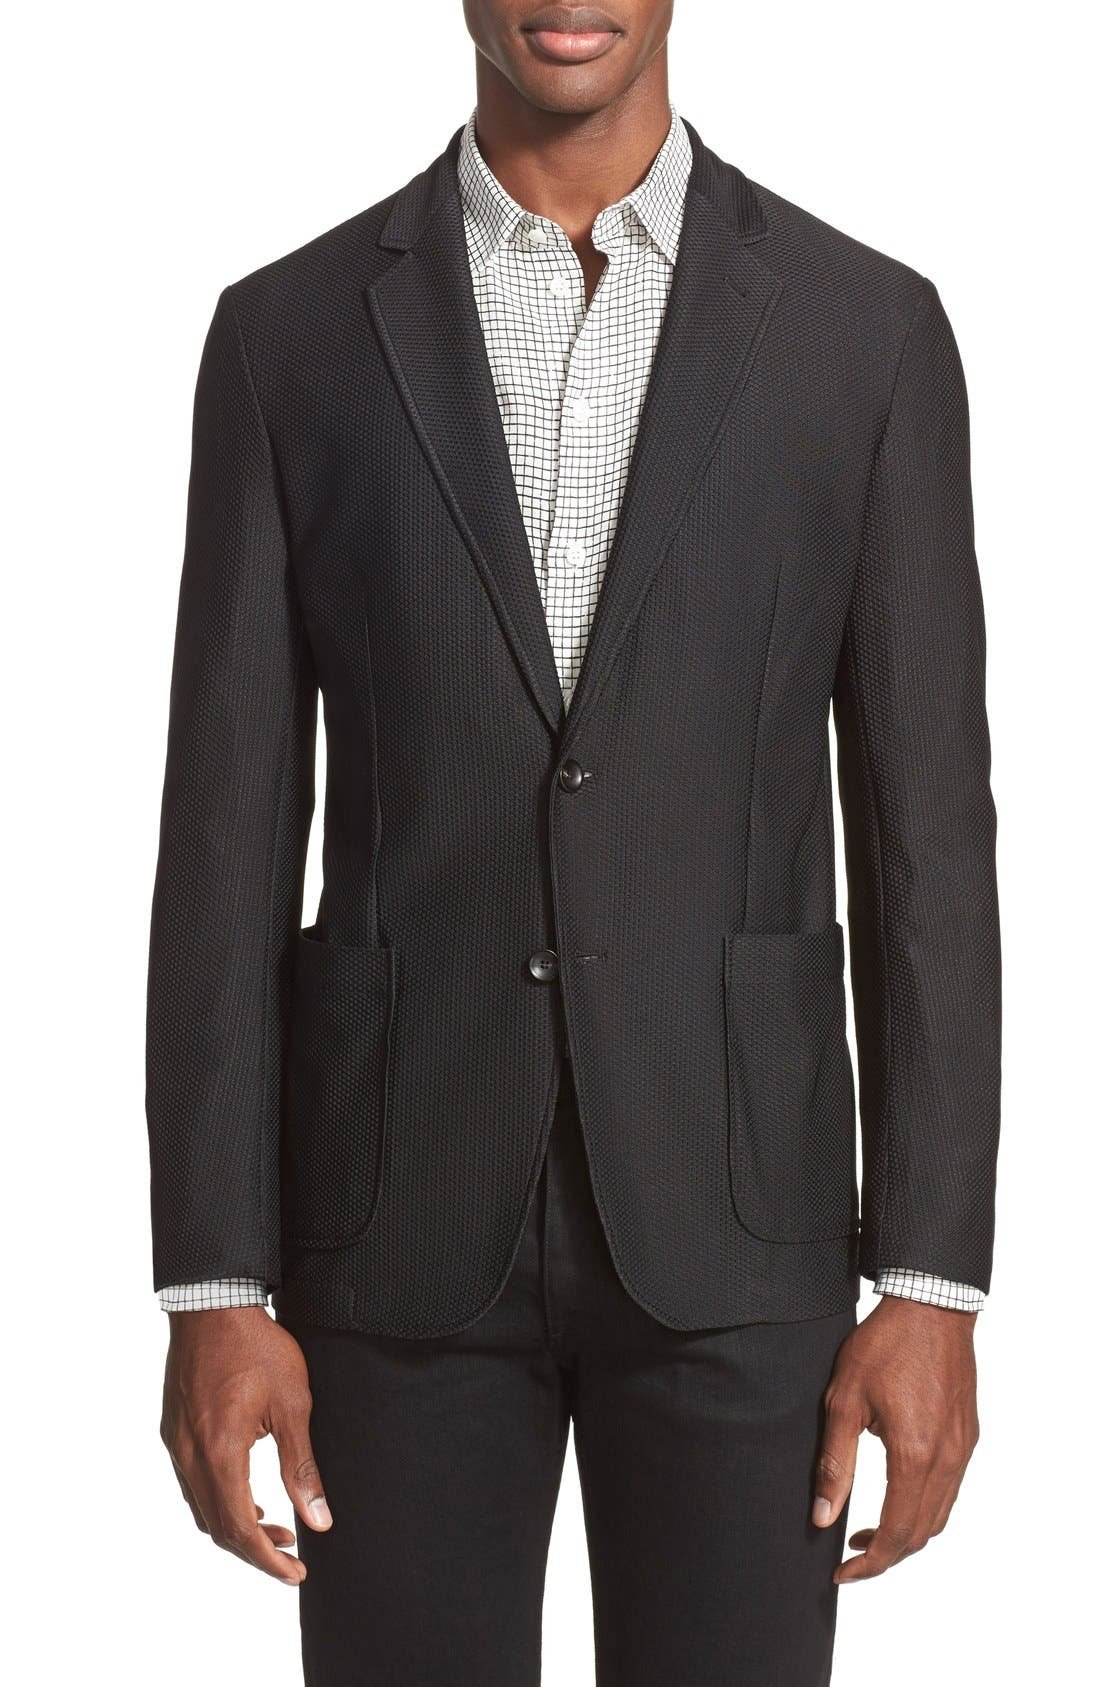 Alternate Image 1 Selected - Armani Collezioni Trim Fit Textured Sport Coat